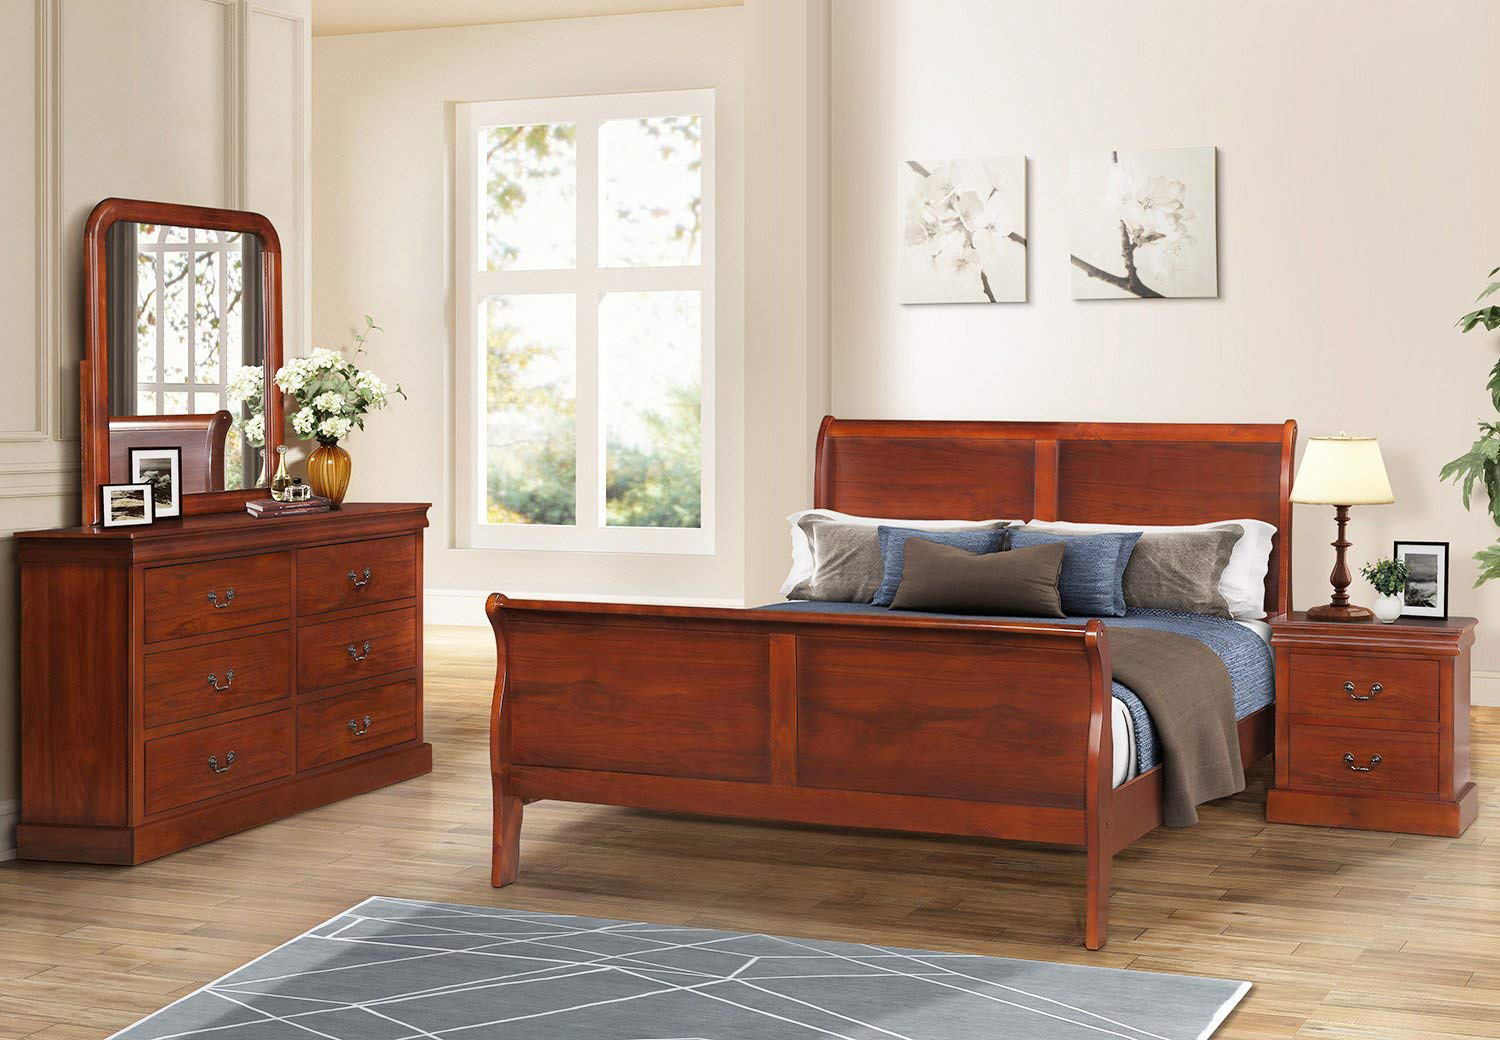 7 Best-Selling Bedroom Furniture Sets on Amazon  Real Simple